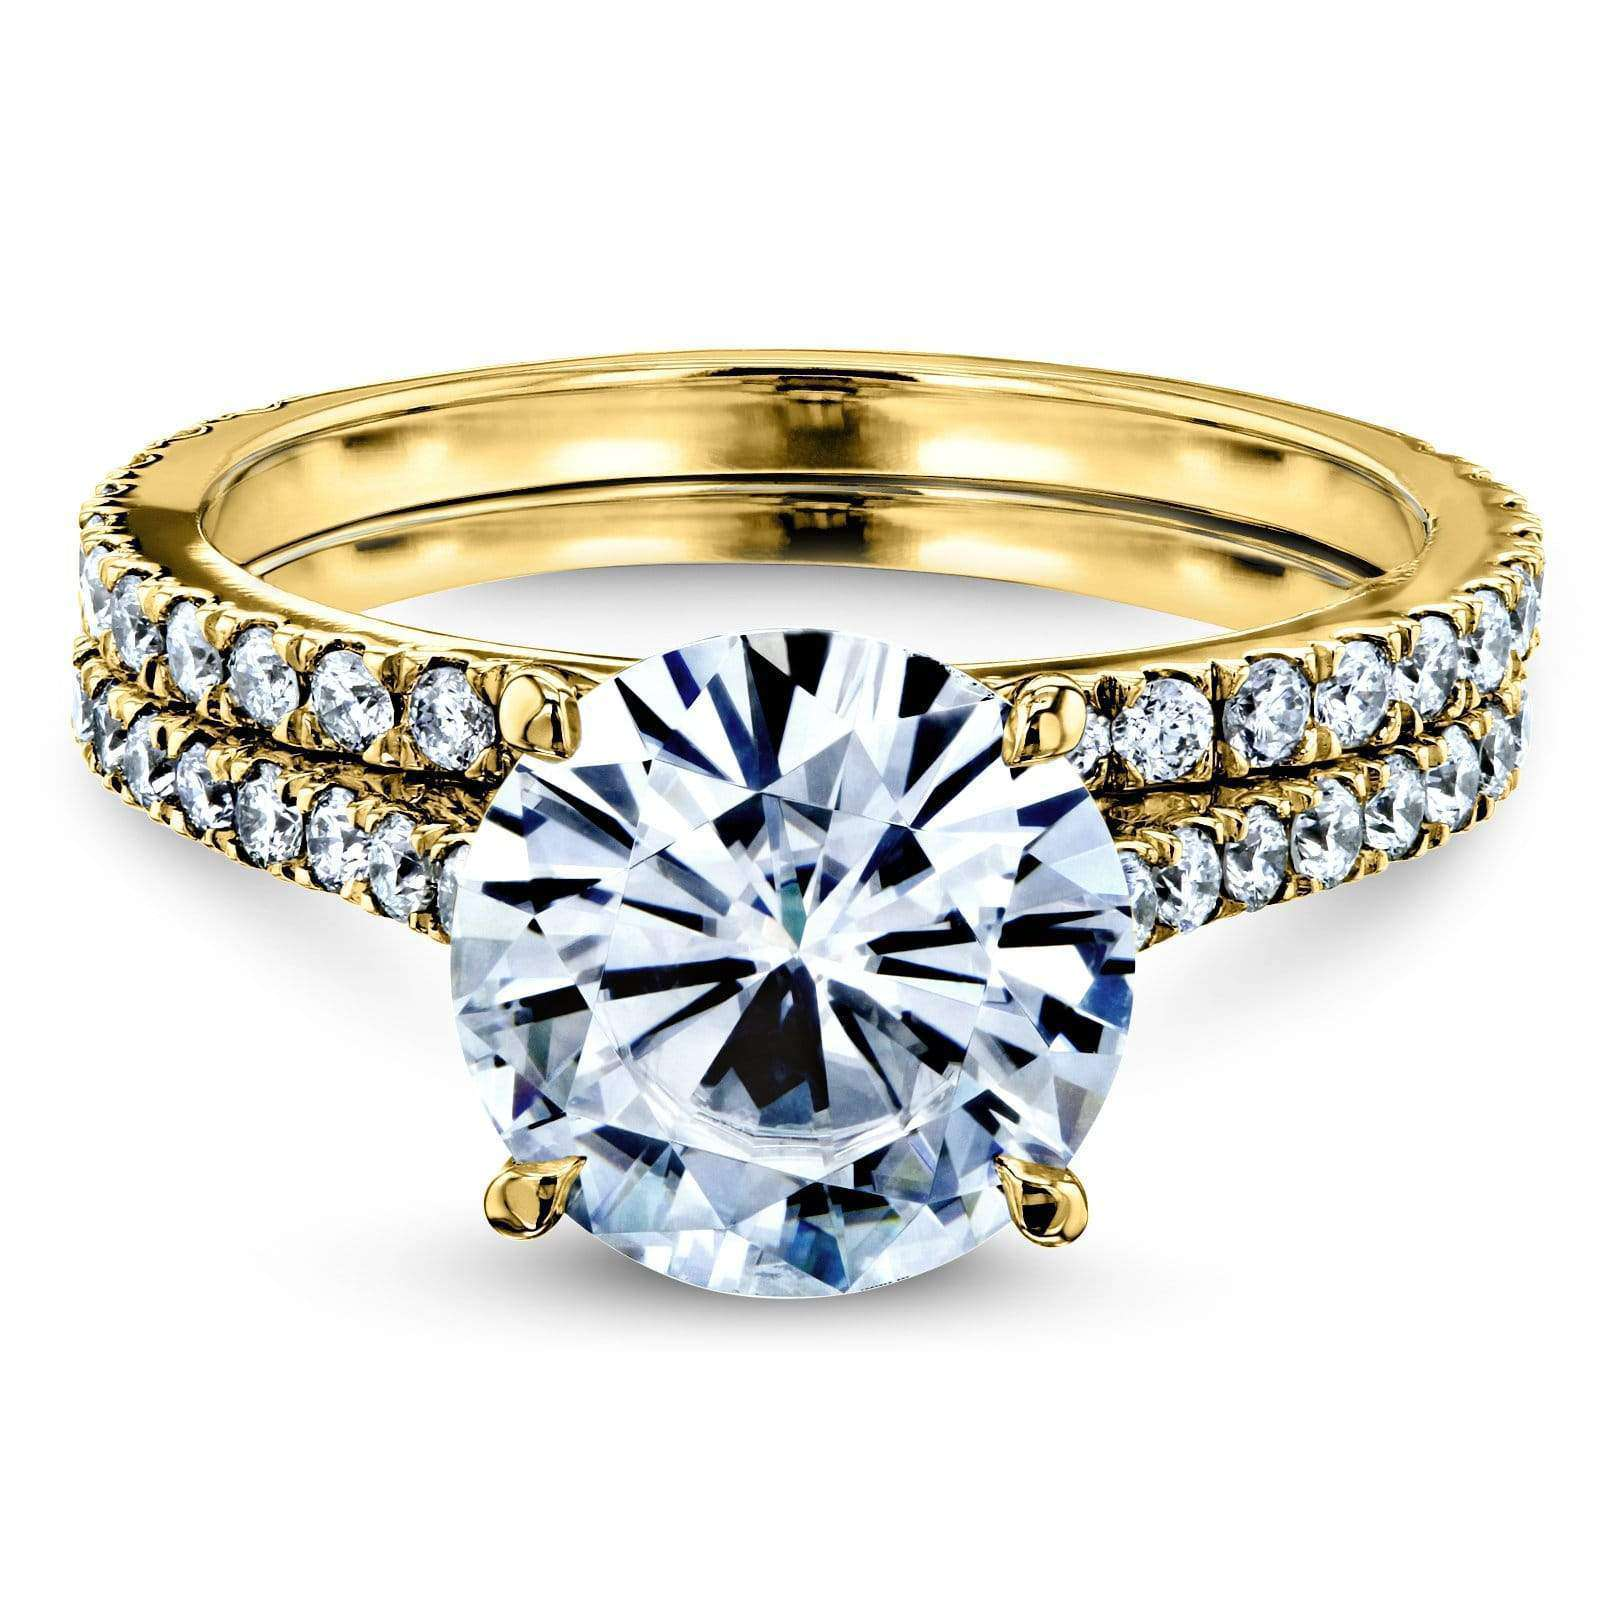 Coupons Basket Cathedral 9mm Moissanite and Diamond Rings 14k Yellow Gold (HI/VS GH/I) - 5.5